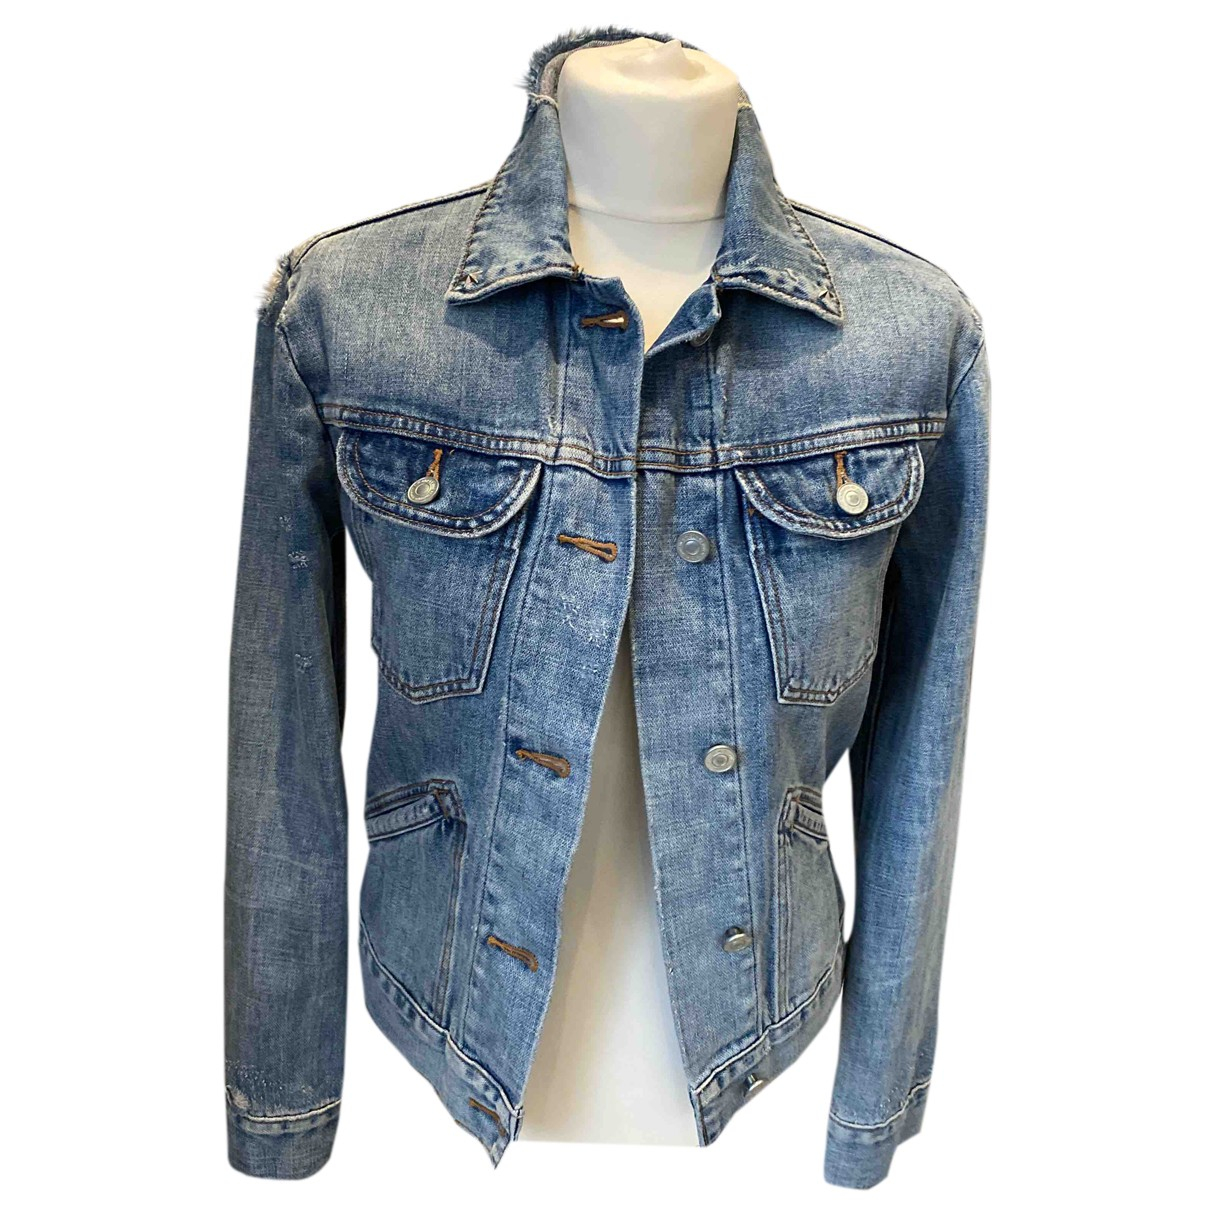 All Saints - Veste   pour femme en denim - bleu